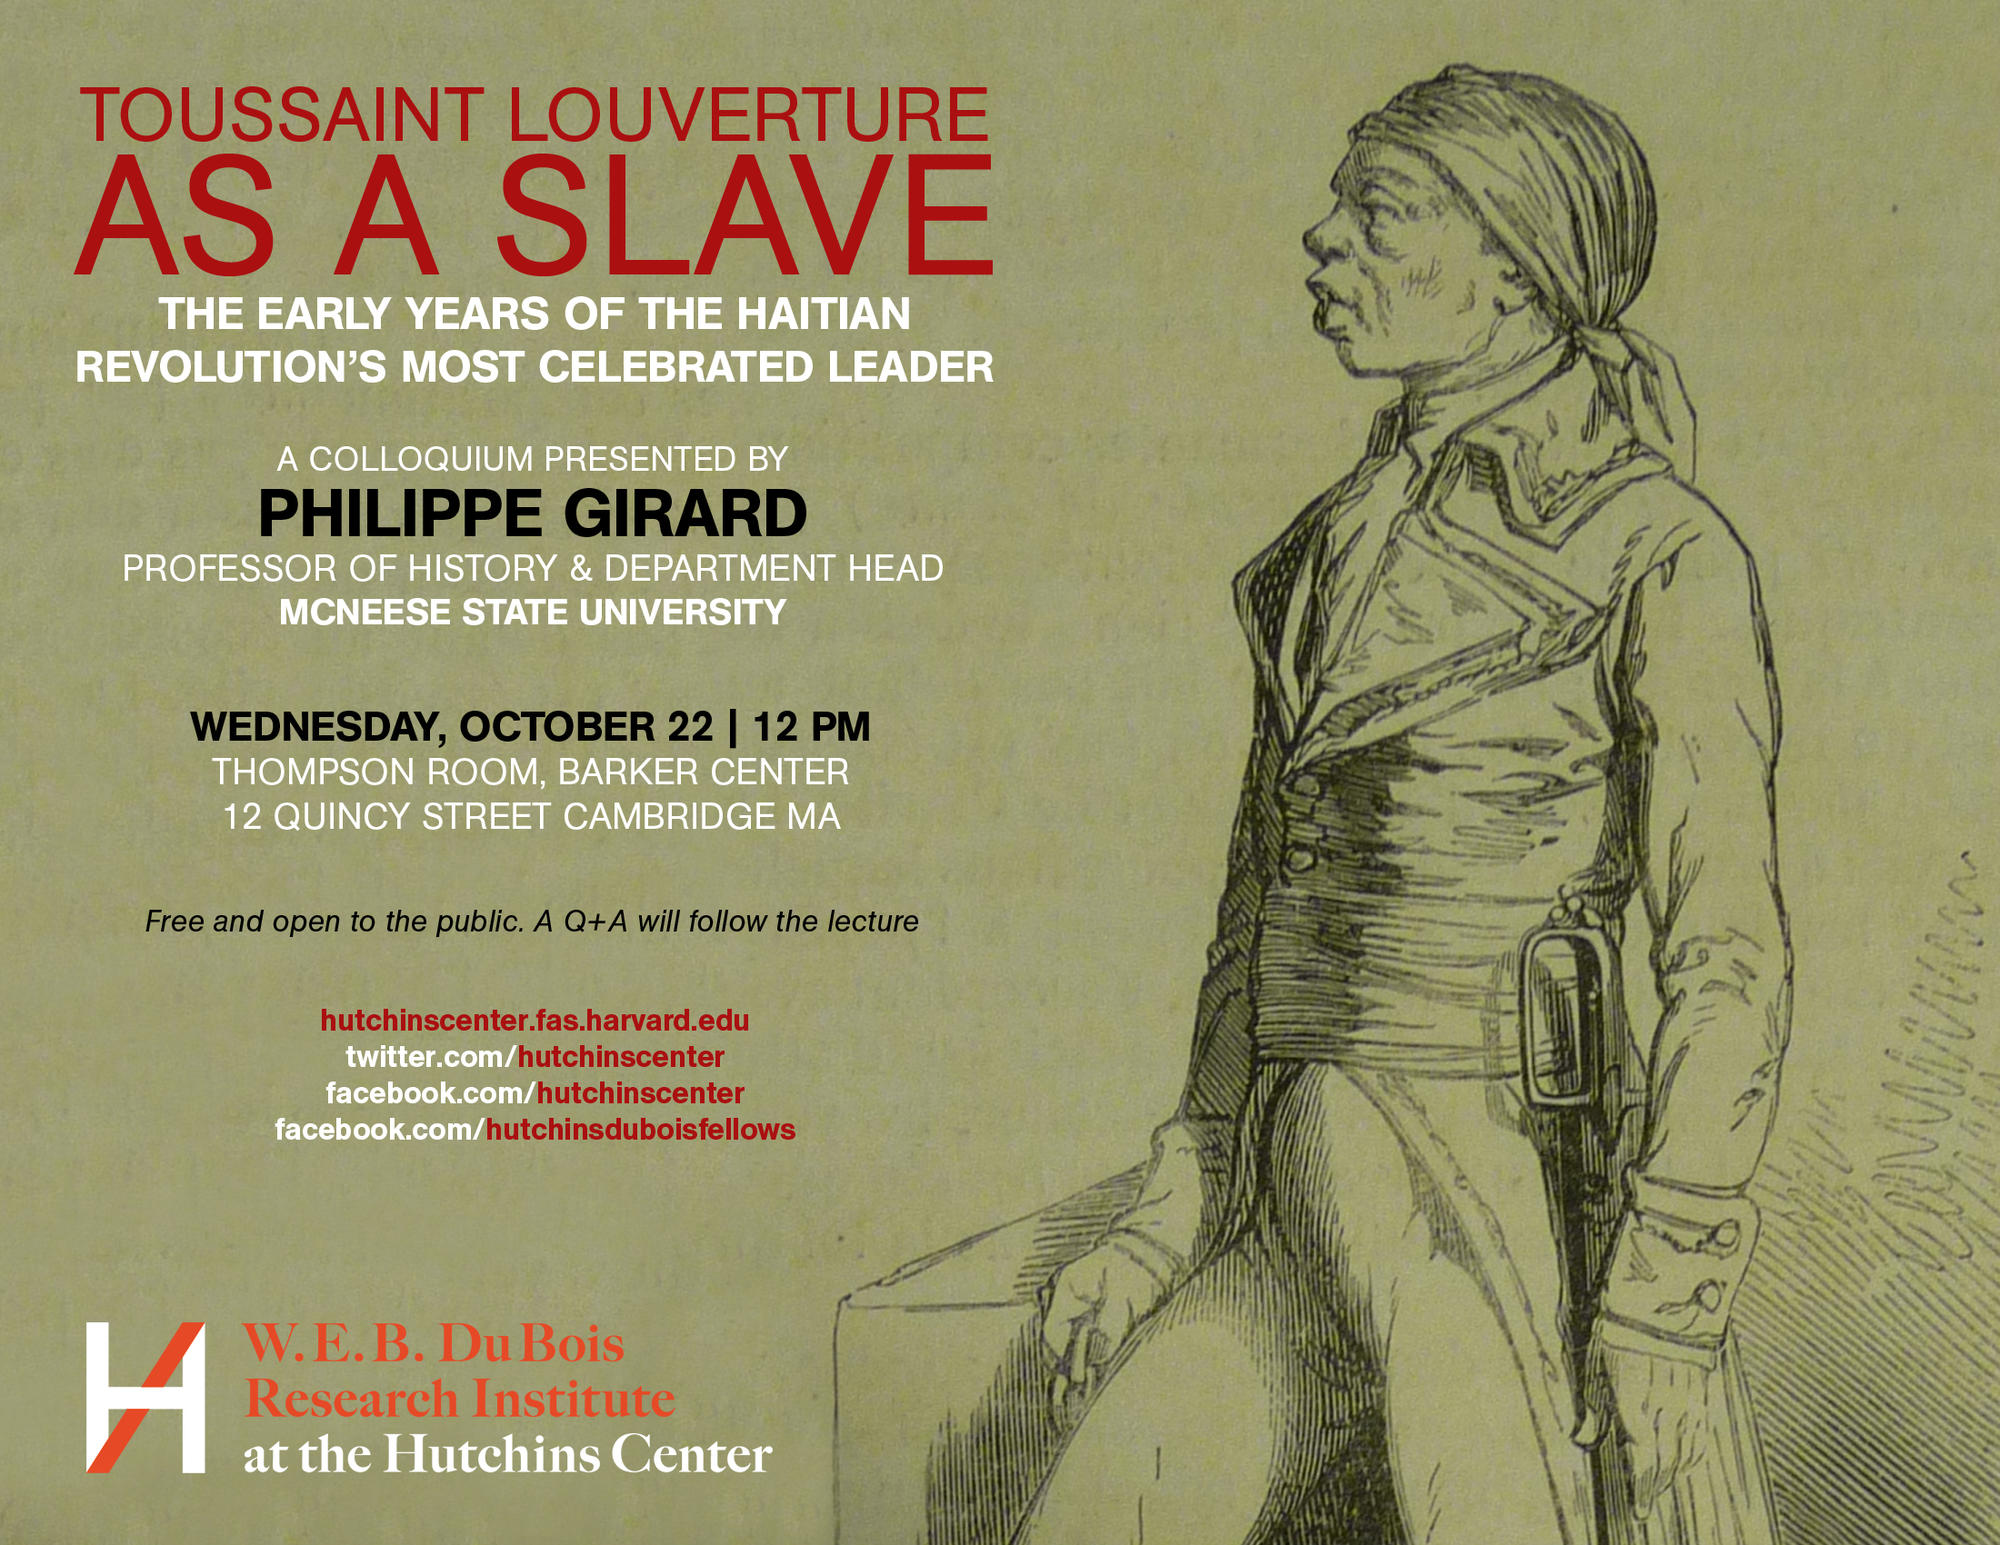 Toussaint Louverture As a Slave - Oct. 22nd, 12pm